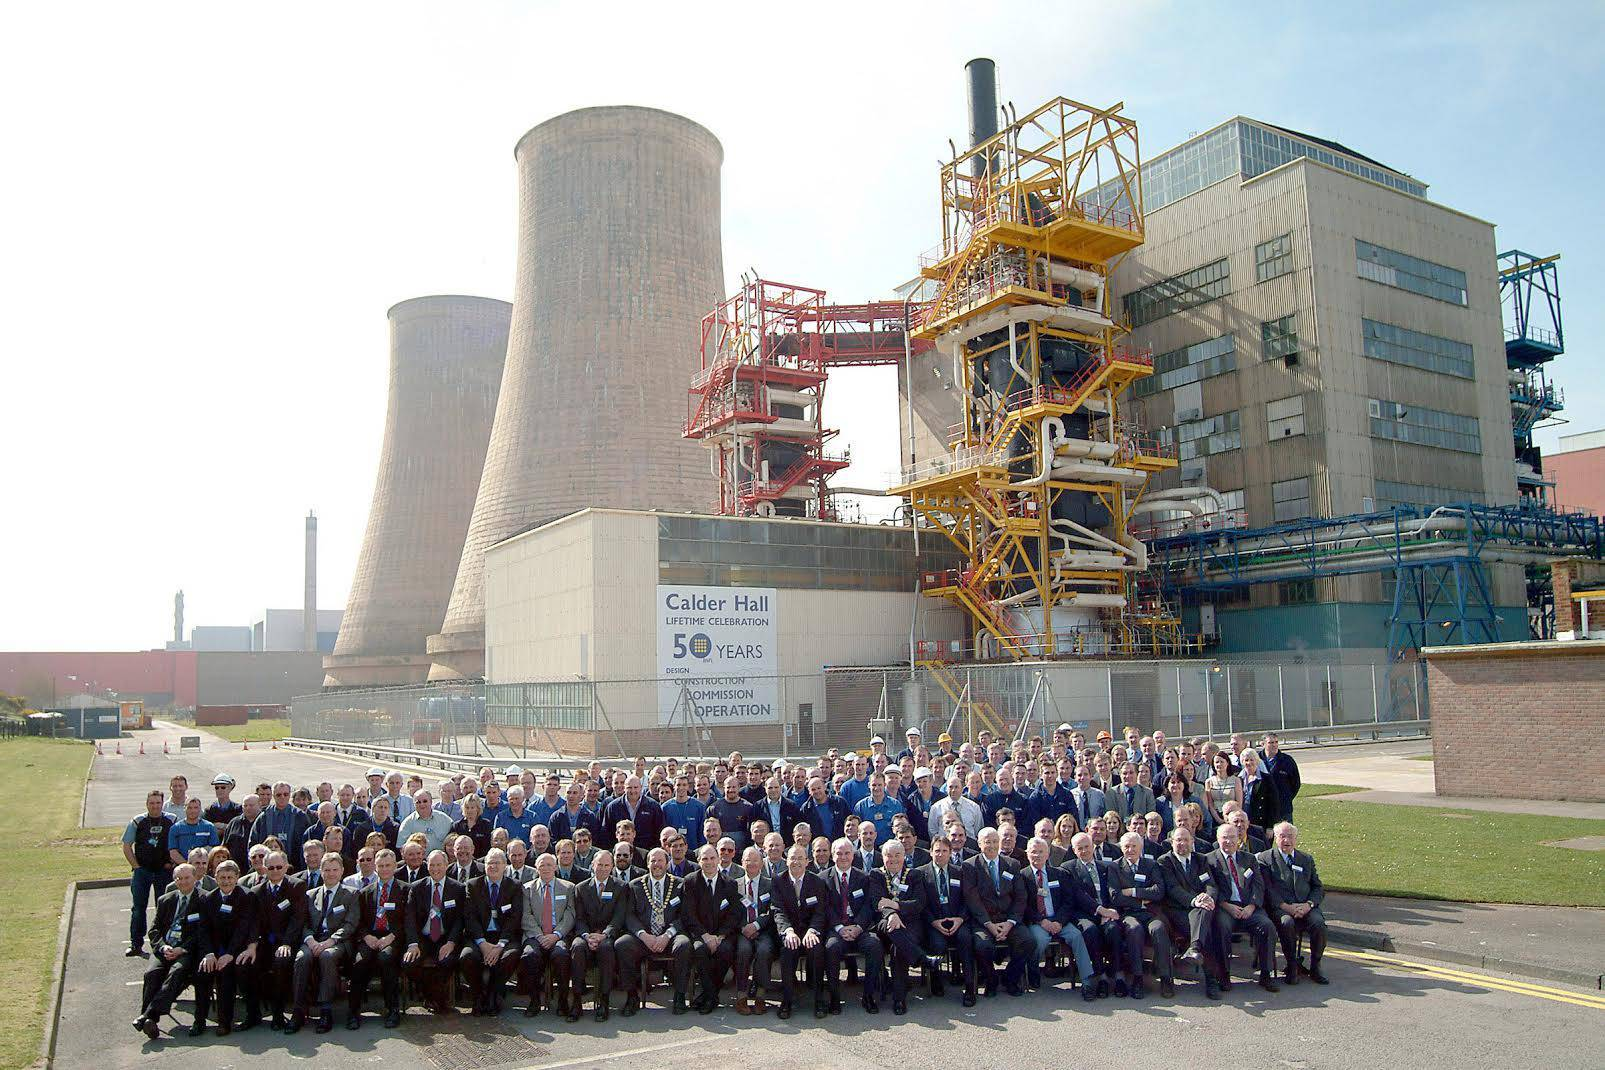 Calls to make Calder Hall first nuclear reactor in UK to be decommissioned